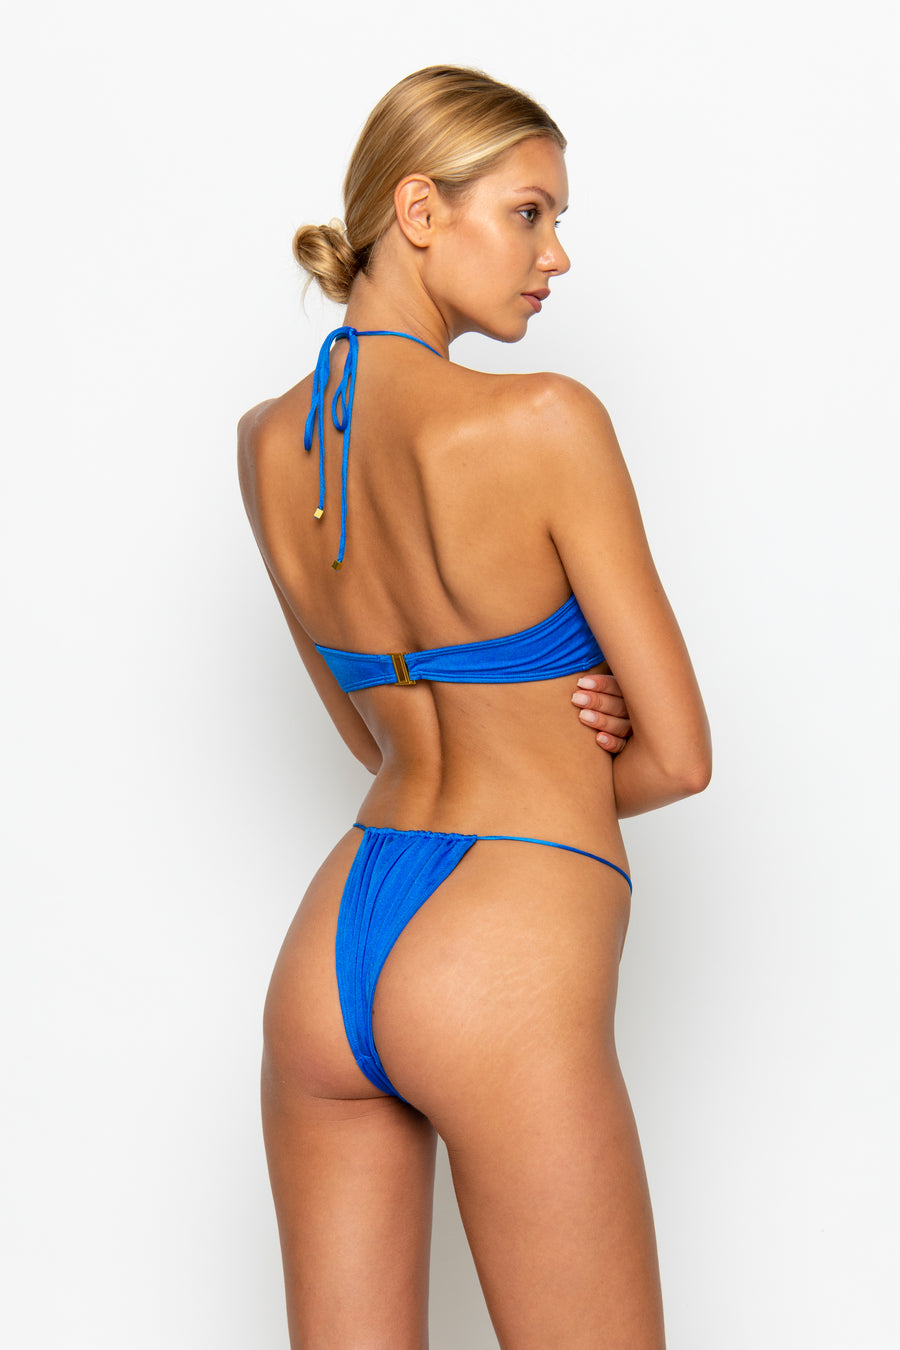 NAOMI Sirius - Tie Side Bikini Bottoms by Sommer Swim, available on sommerswim.com for $69 Kendall Jenner Shorts SIMILAR PRODUCT